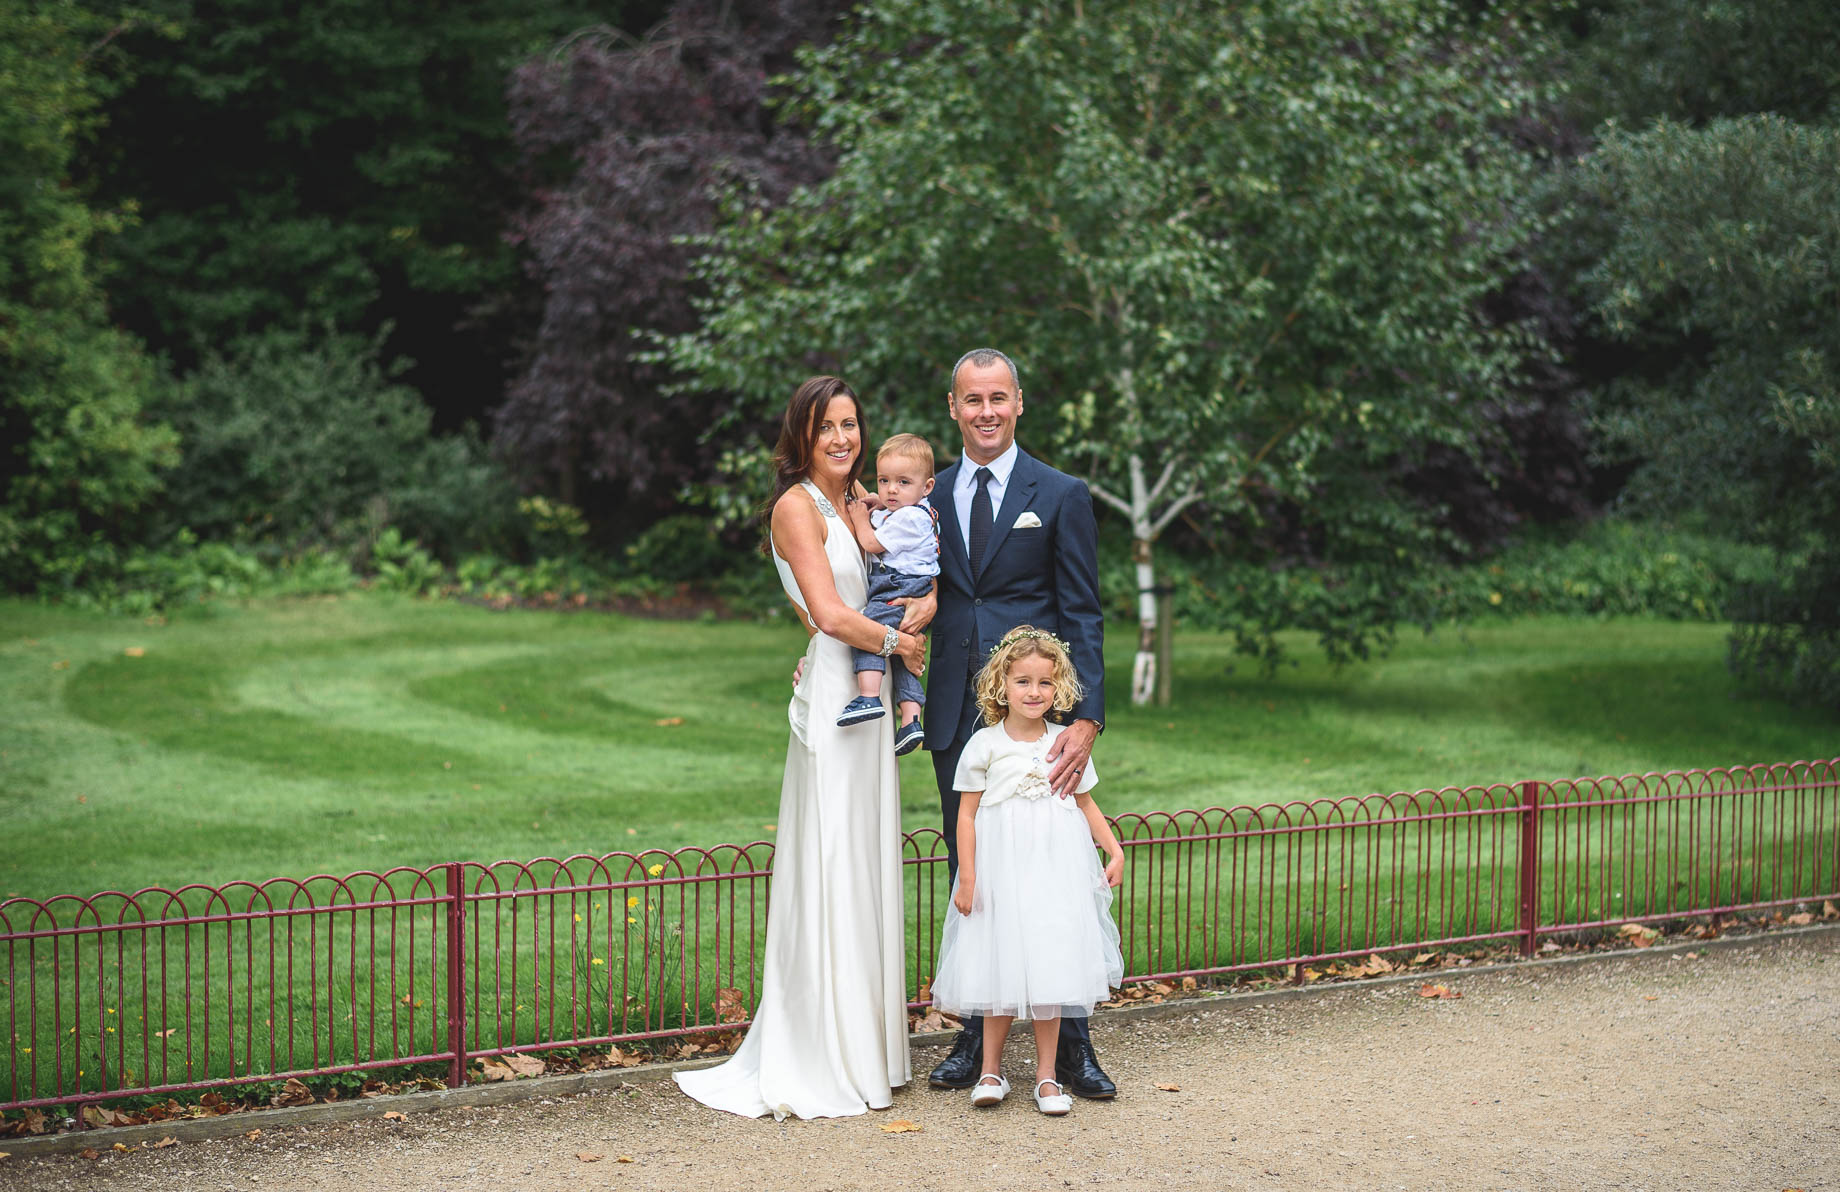 Chelsea and Mayfair wedding photography - Guy Collier - Vicki and Damien (80 of 126)